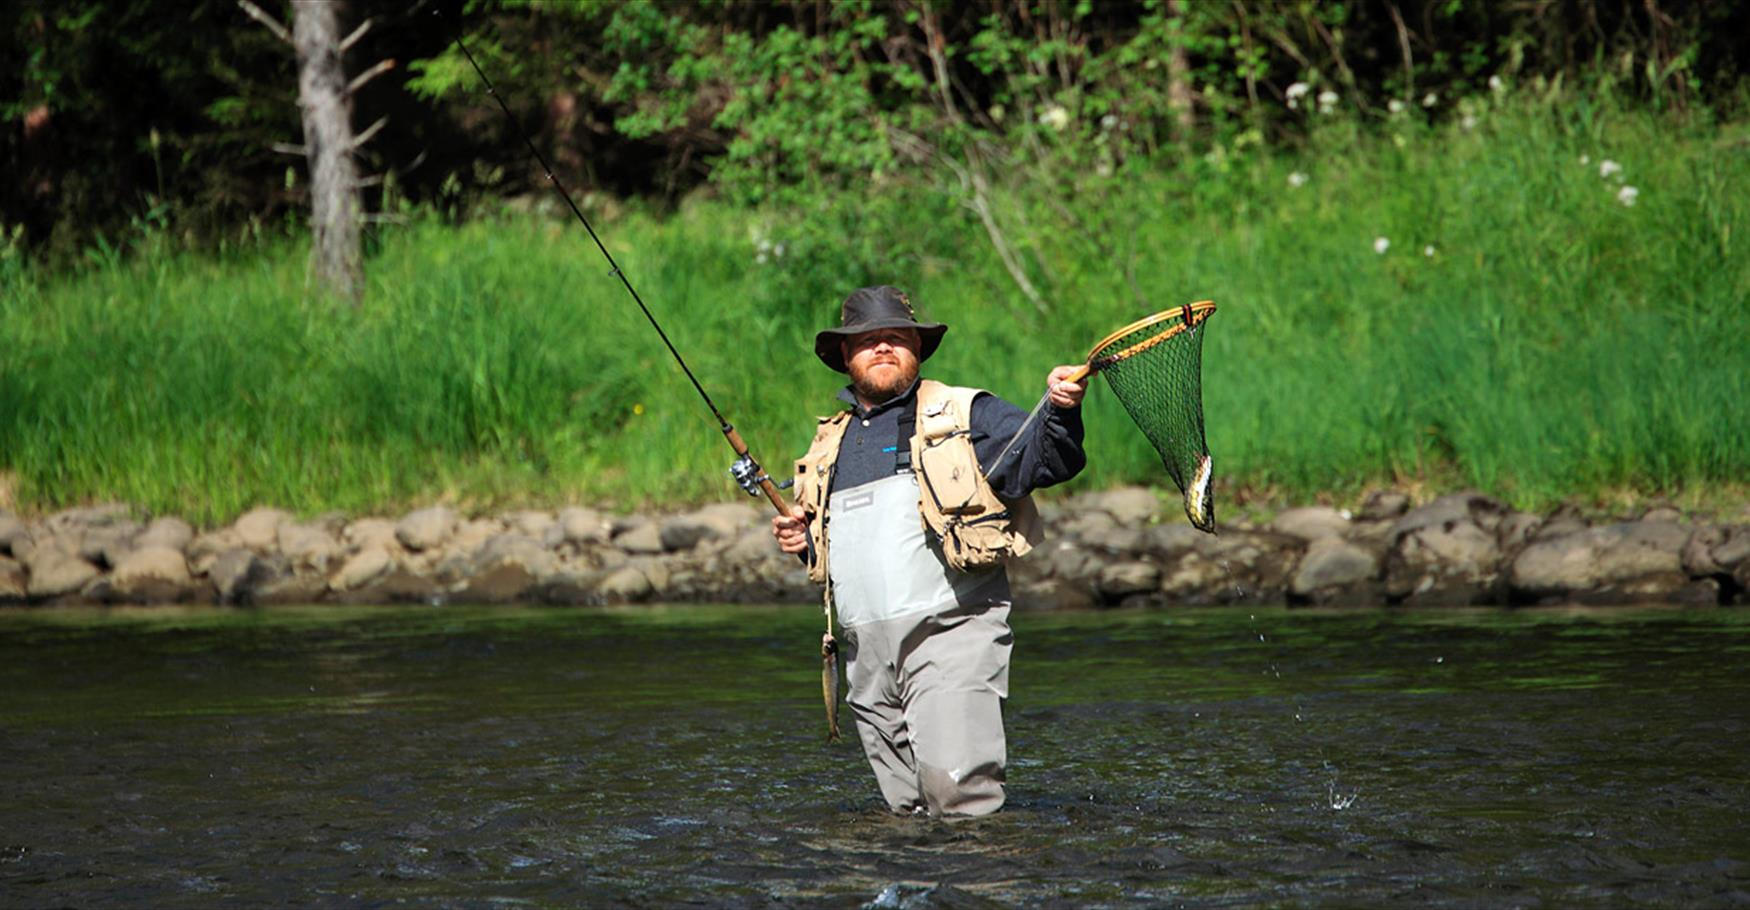 Fly fishing in the River Begna.